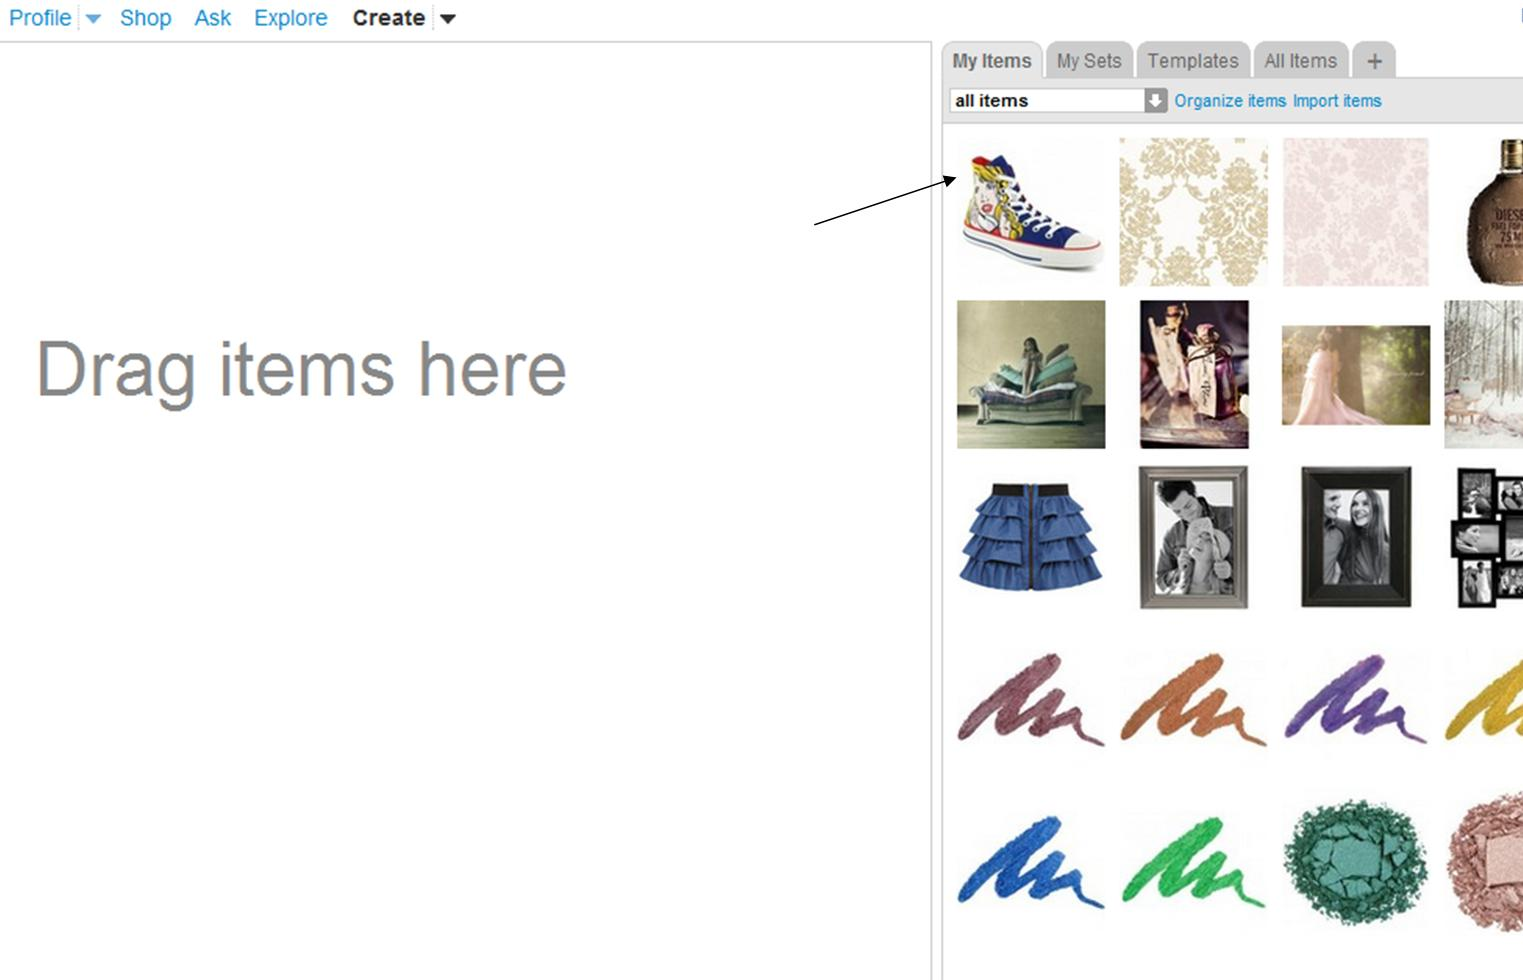 how to add to my items on polyvore